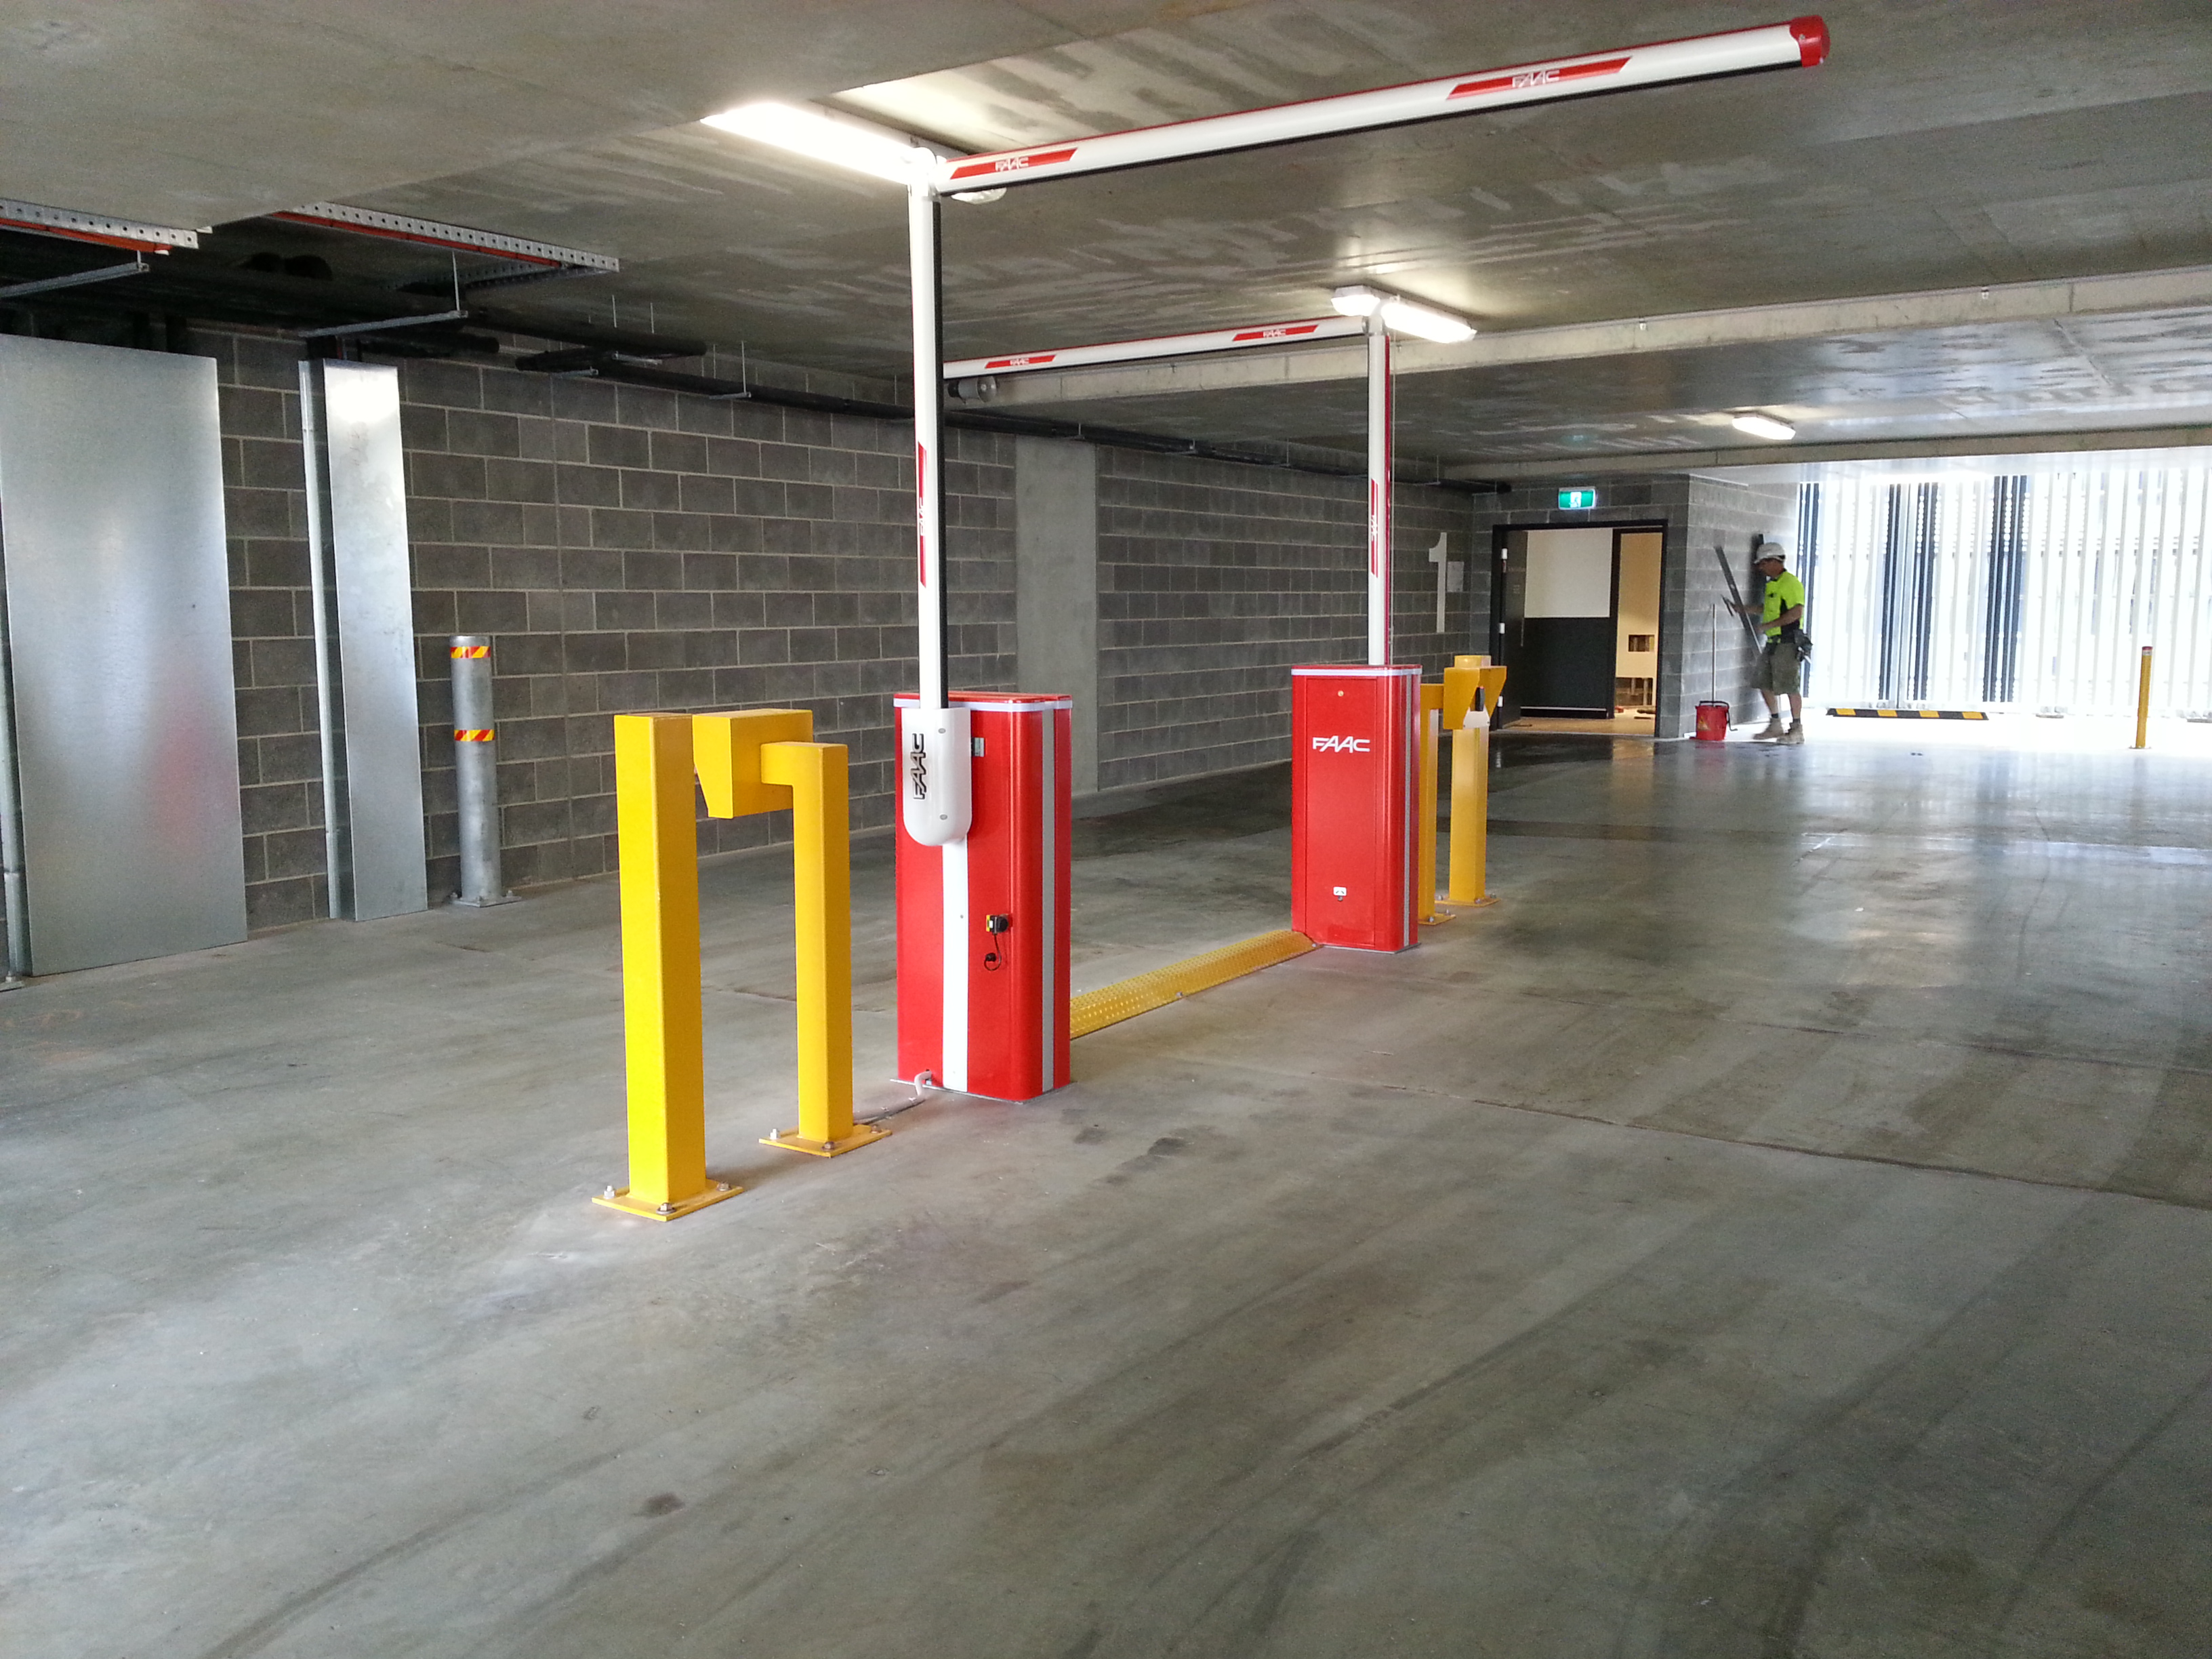 entry, exit boom gates with access control system – nexus 3 business